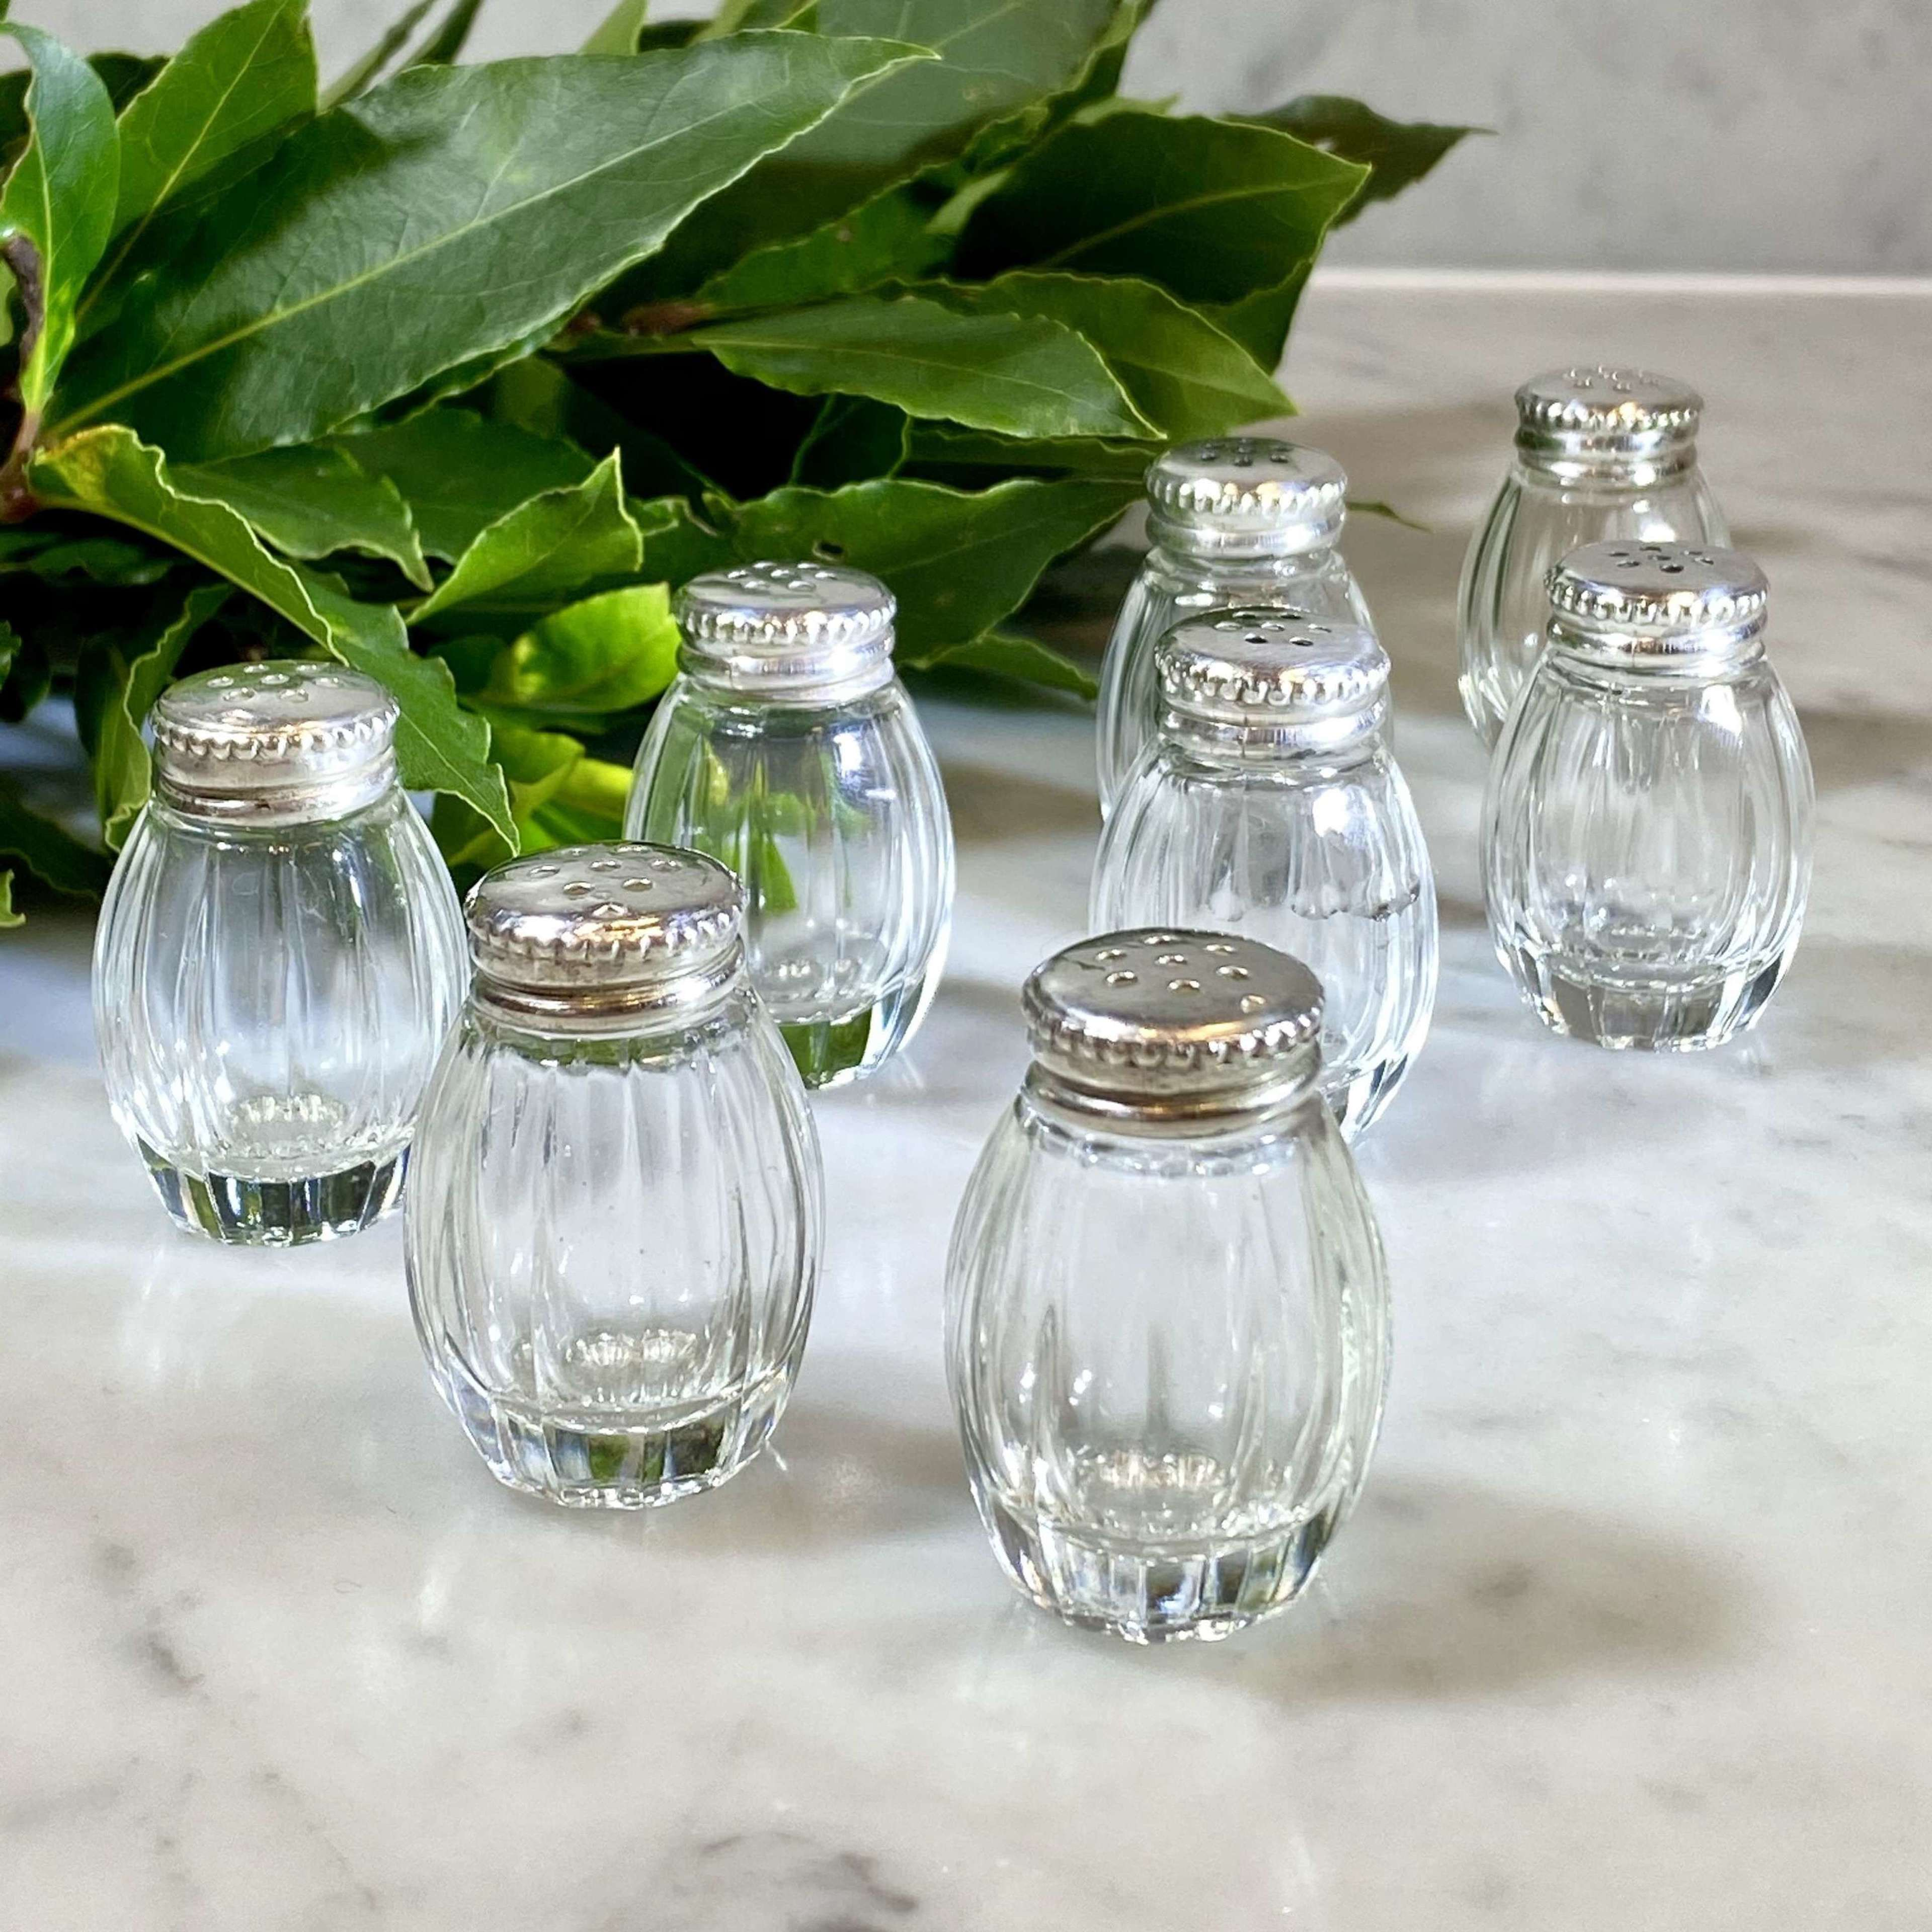 8 Individual Christofle Silver And Crystal Salt Or Pepper Shakers In Antique Glass Bottles